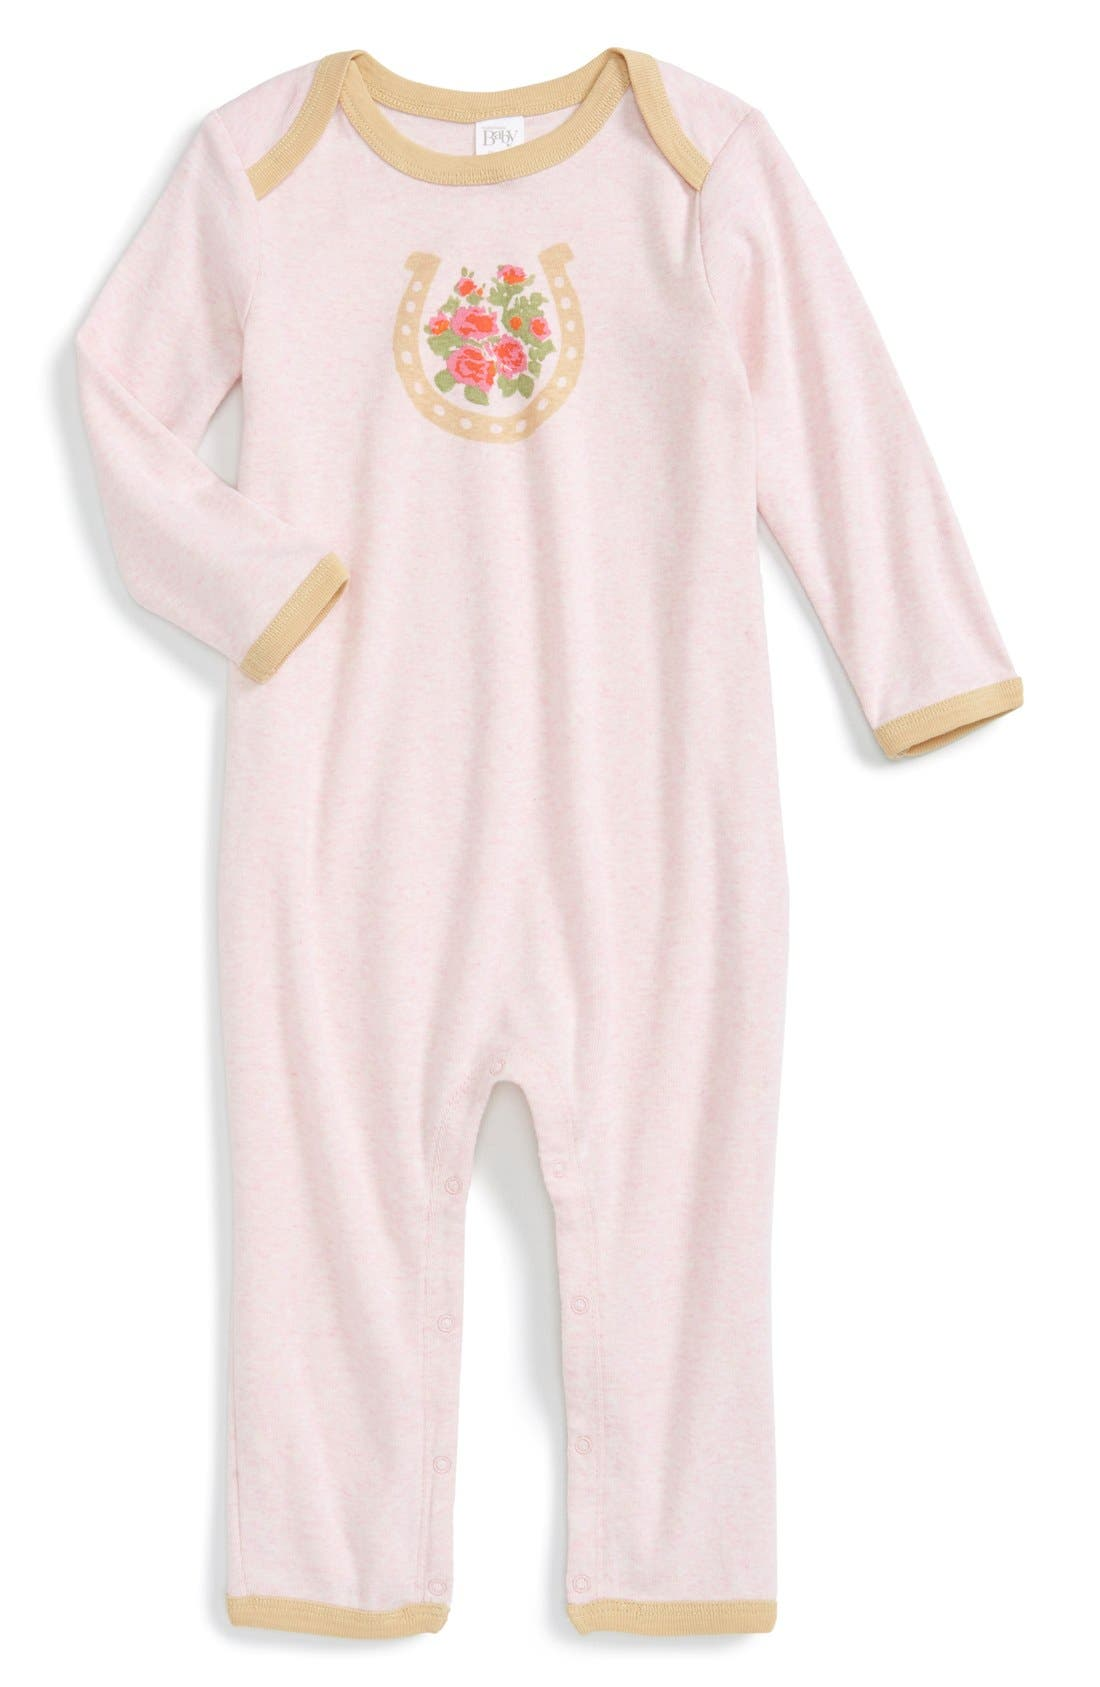 Alternate Image 1 Selected - Nordstrom Baby Graphic Romper (Baby Girls)